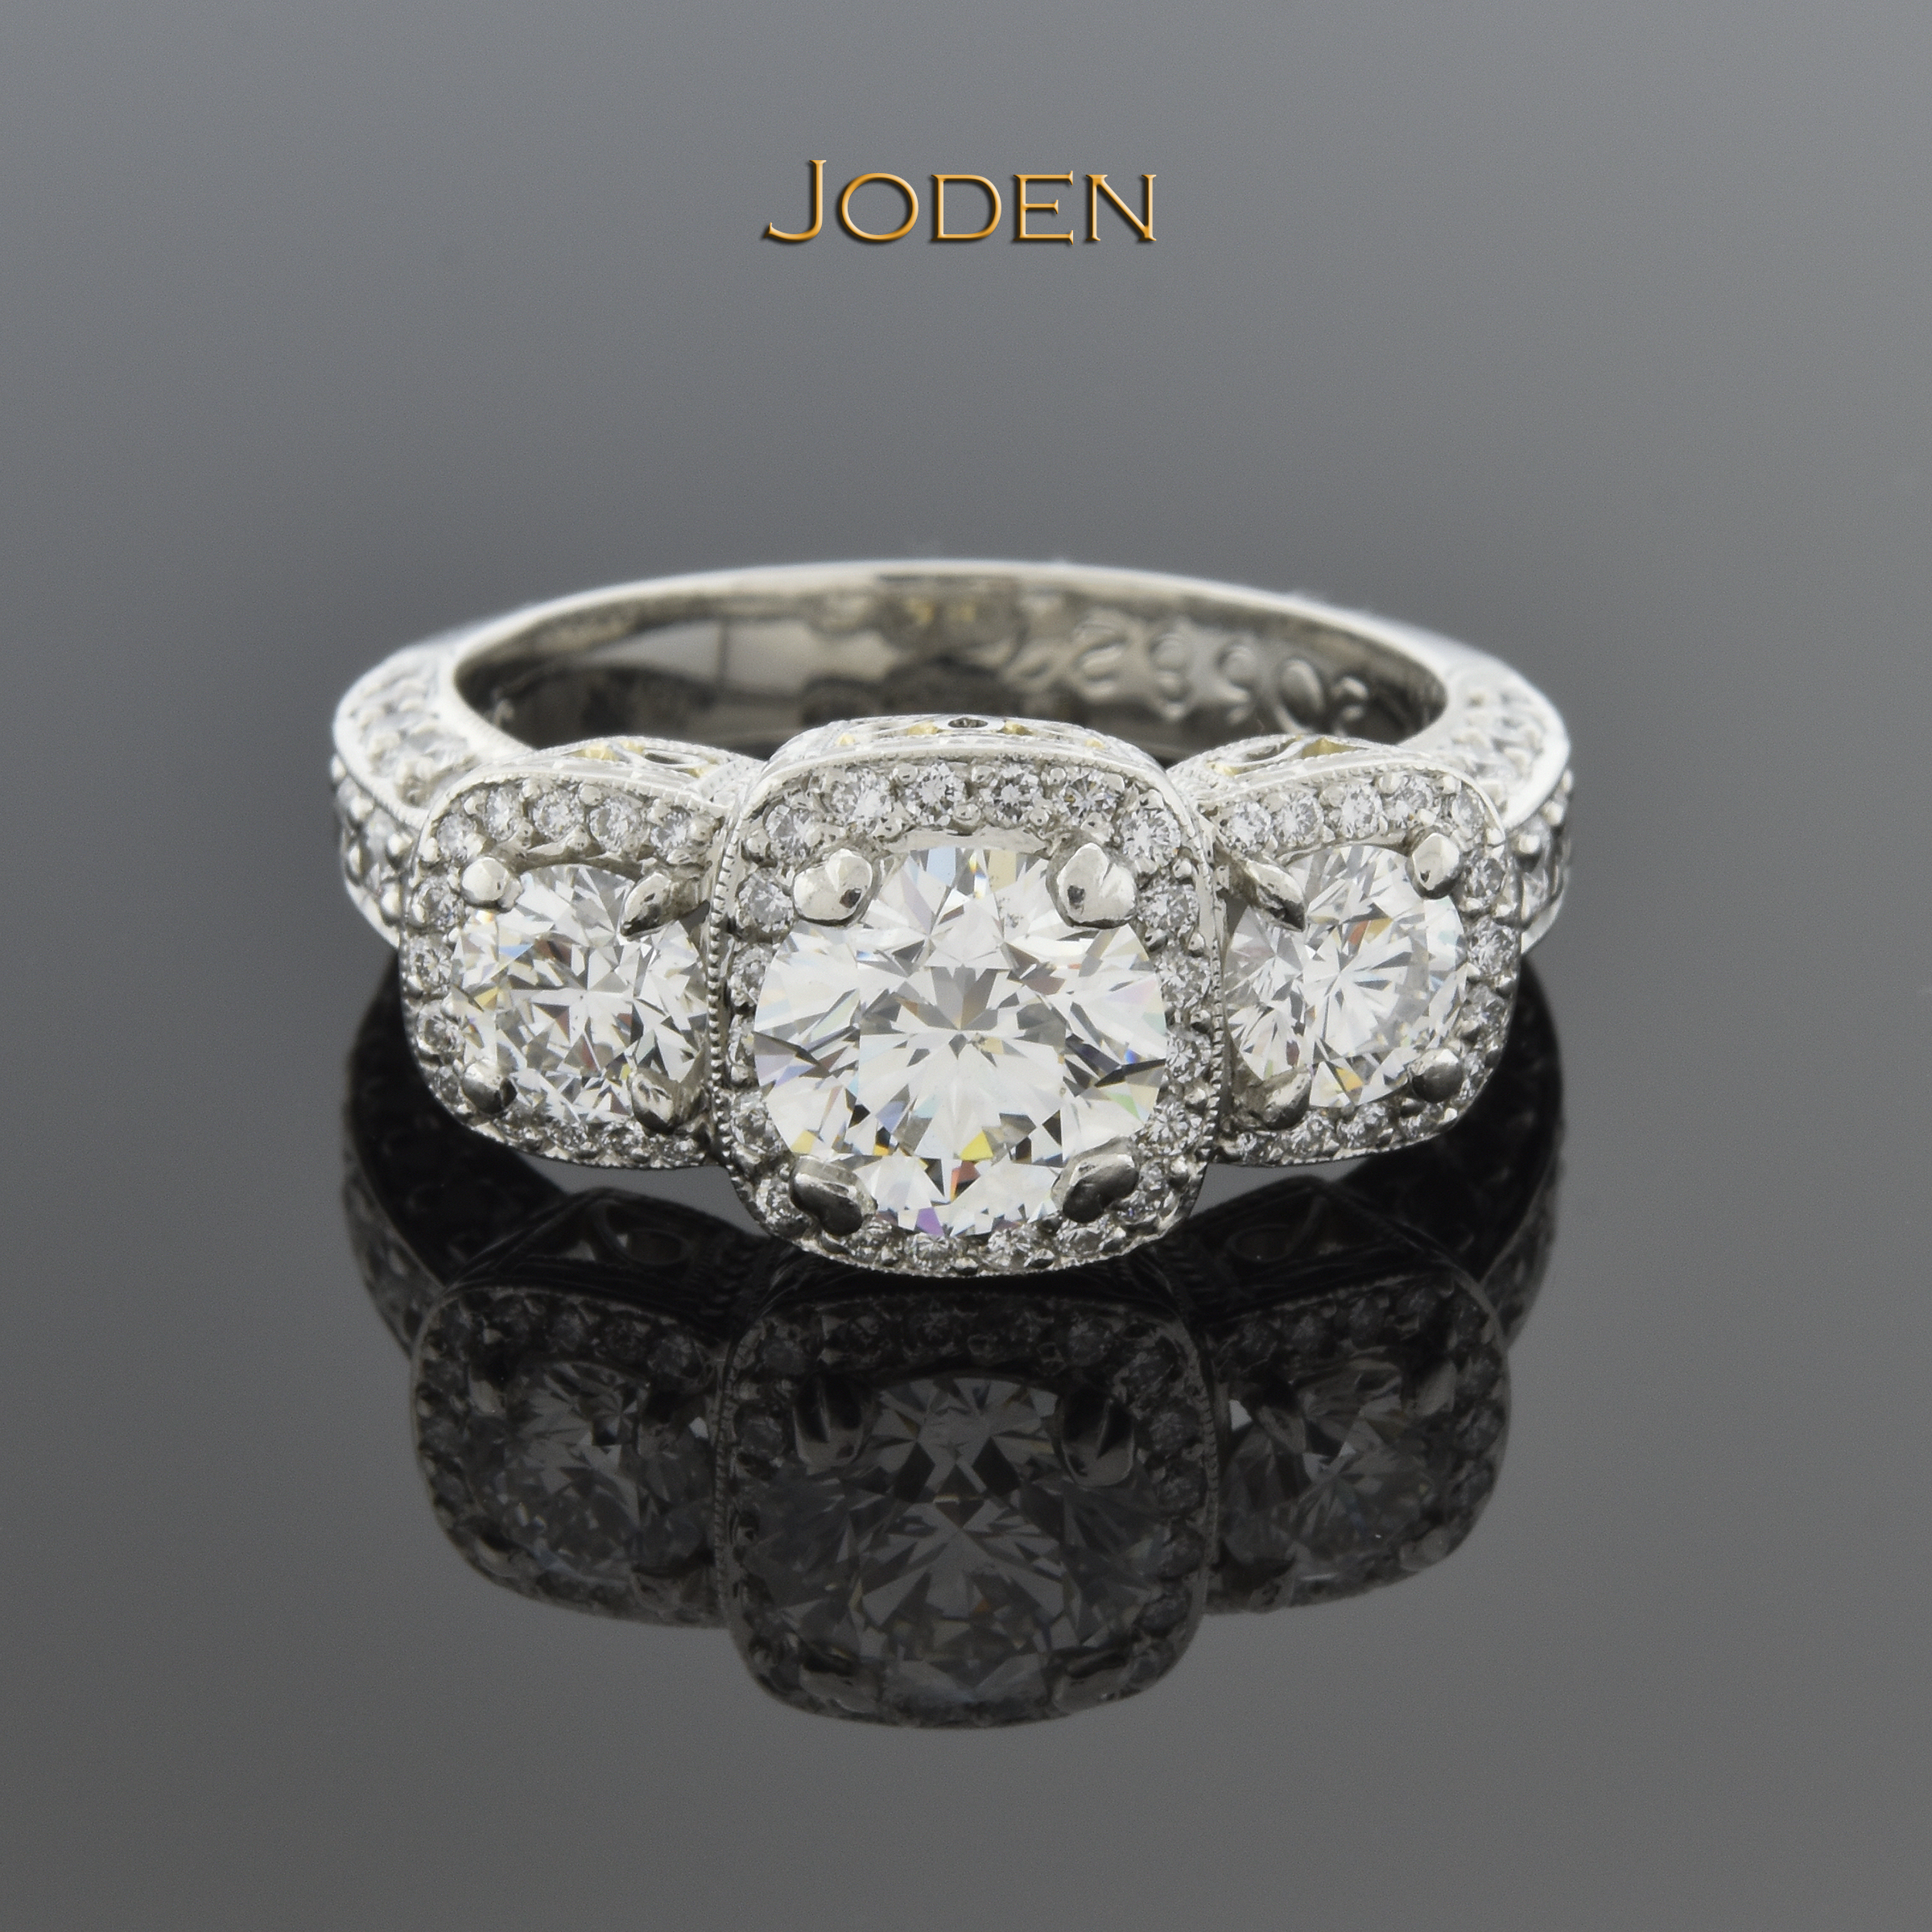 The three stone diamond ring has been invented and reinvented for nearly a century. This modern version features a diamond halo around each before blending into the diamond accents.  The center holds one round brilliant cut diamond that has a weight of 1.05 carat. Two round brilliant cut diamonds that have a weight of .60 carat total weight. This ring is accented by 76 round brilliant cut diamonds that have a weight of .74 carat total weight.